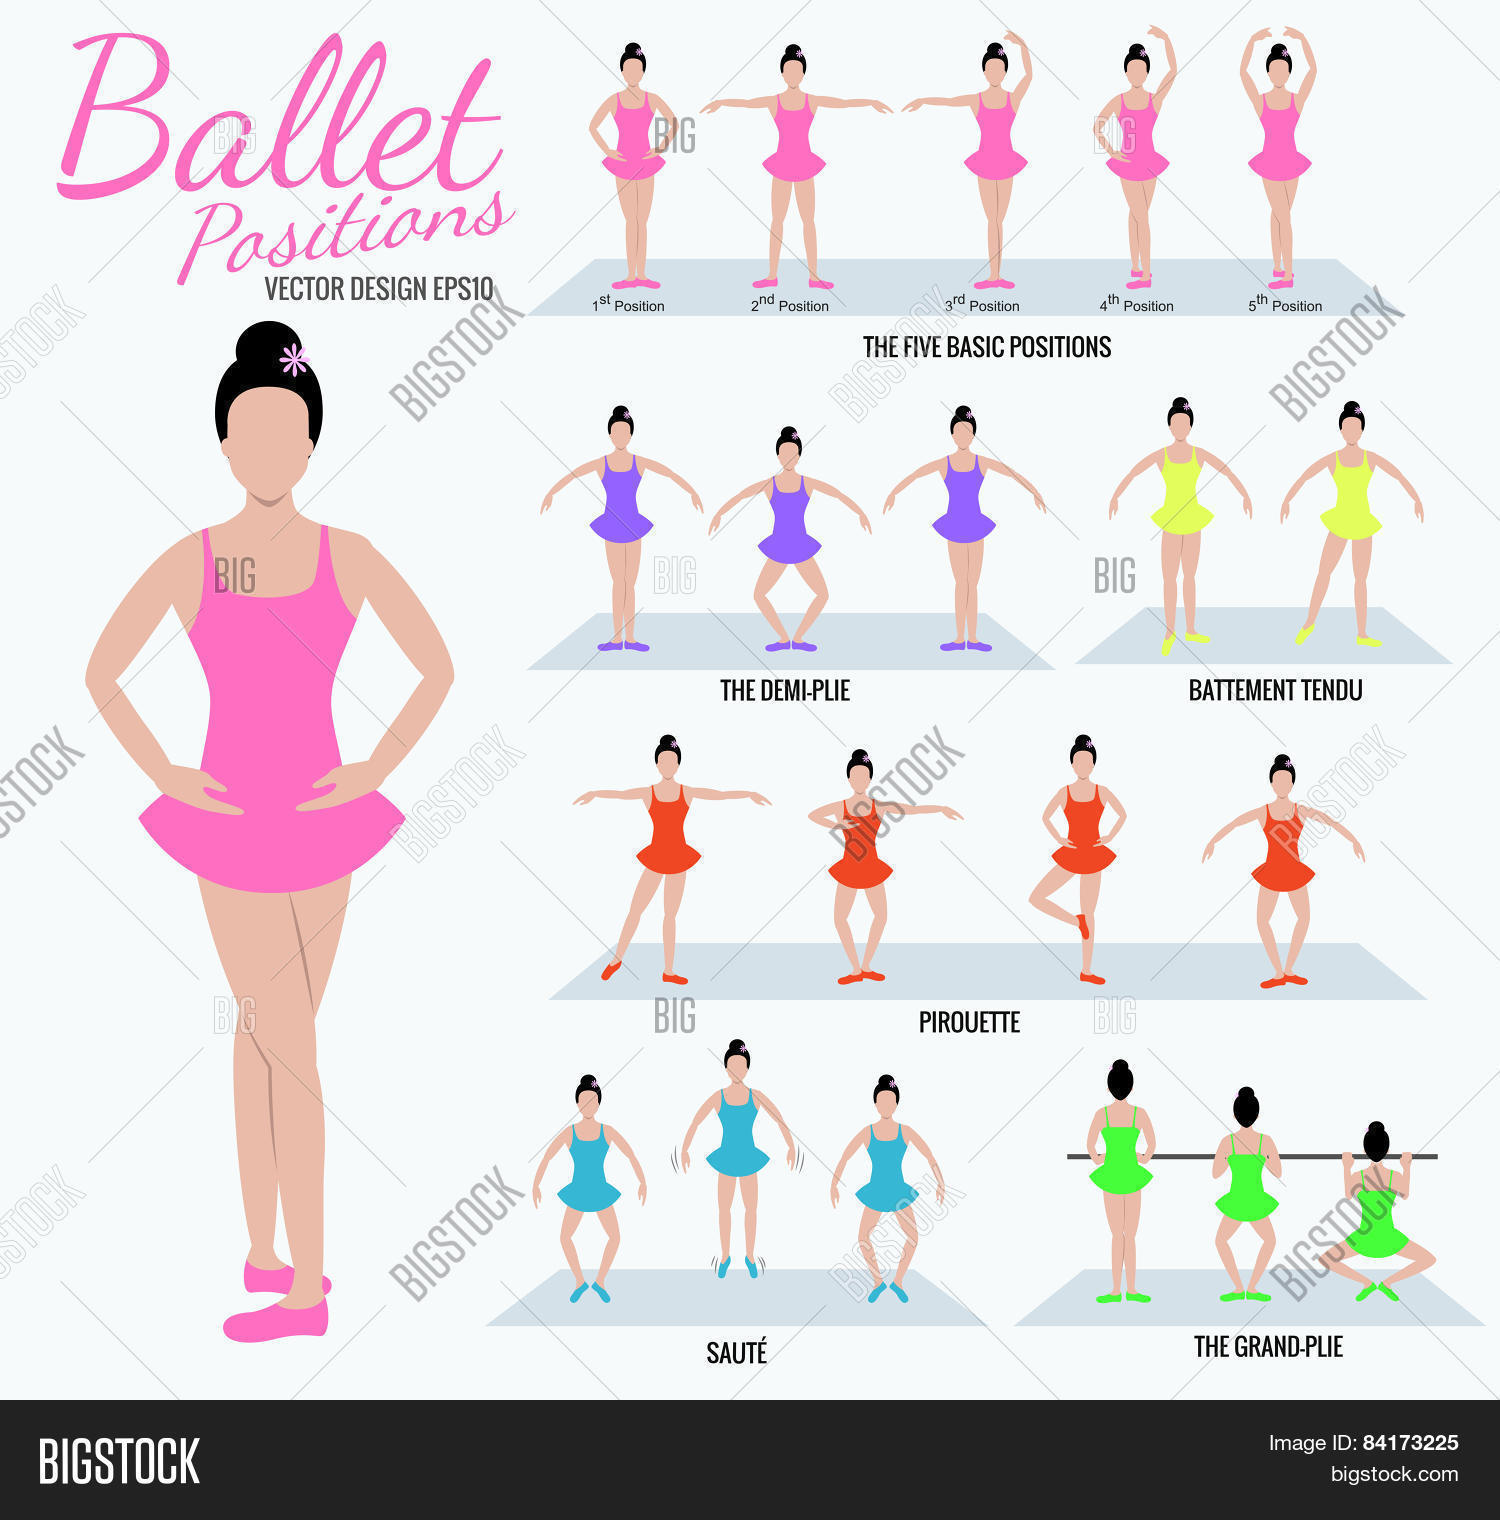 Ballet Positions Girl Vector Amp Photo Free Trial